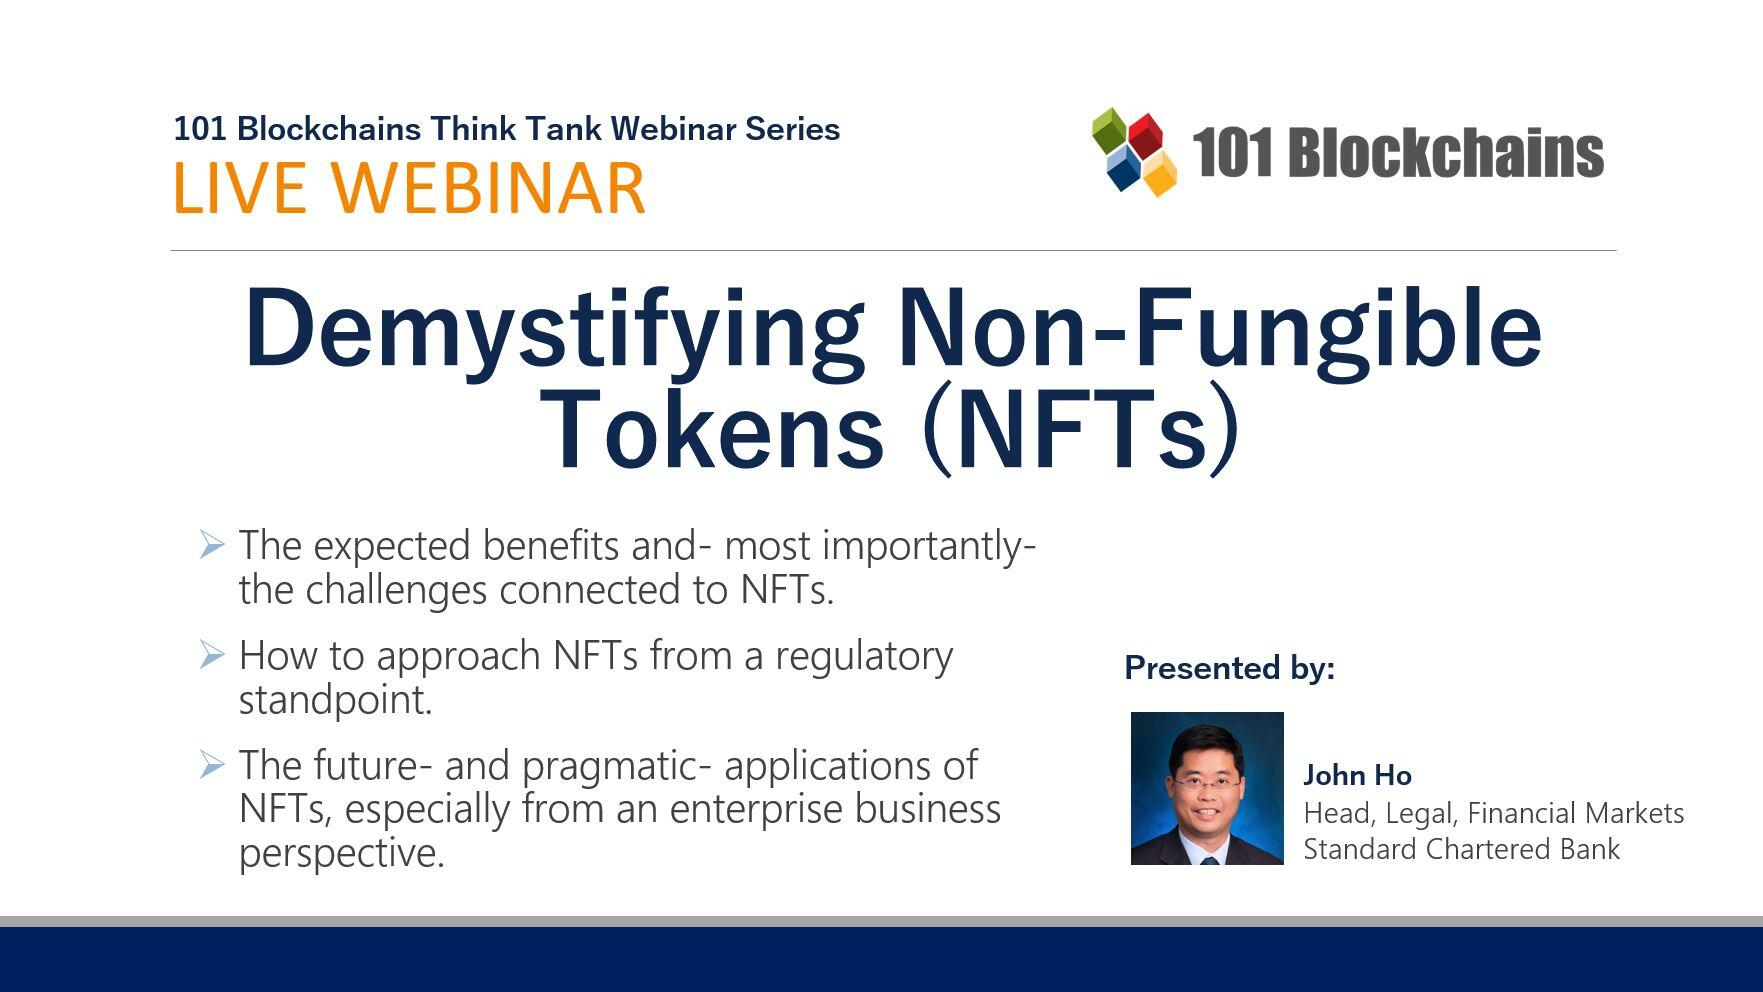 Demystifying Non-Fungible Tokens (NFTs) webinar